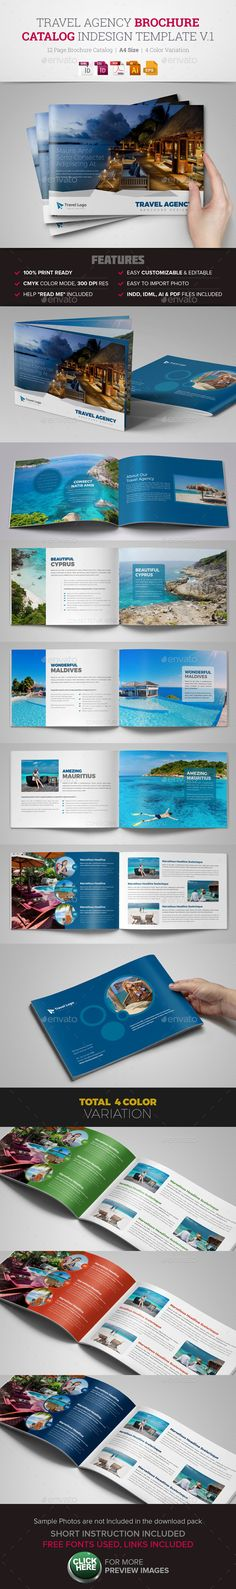 1000 images about print design catalogs on pinterest for Travel agency brochure template